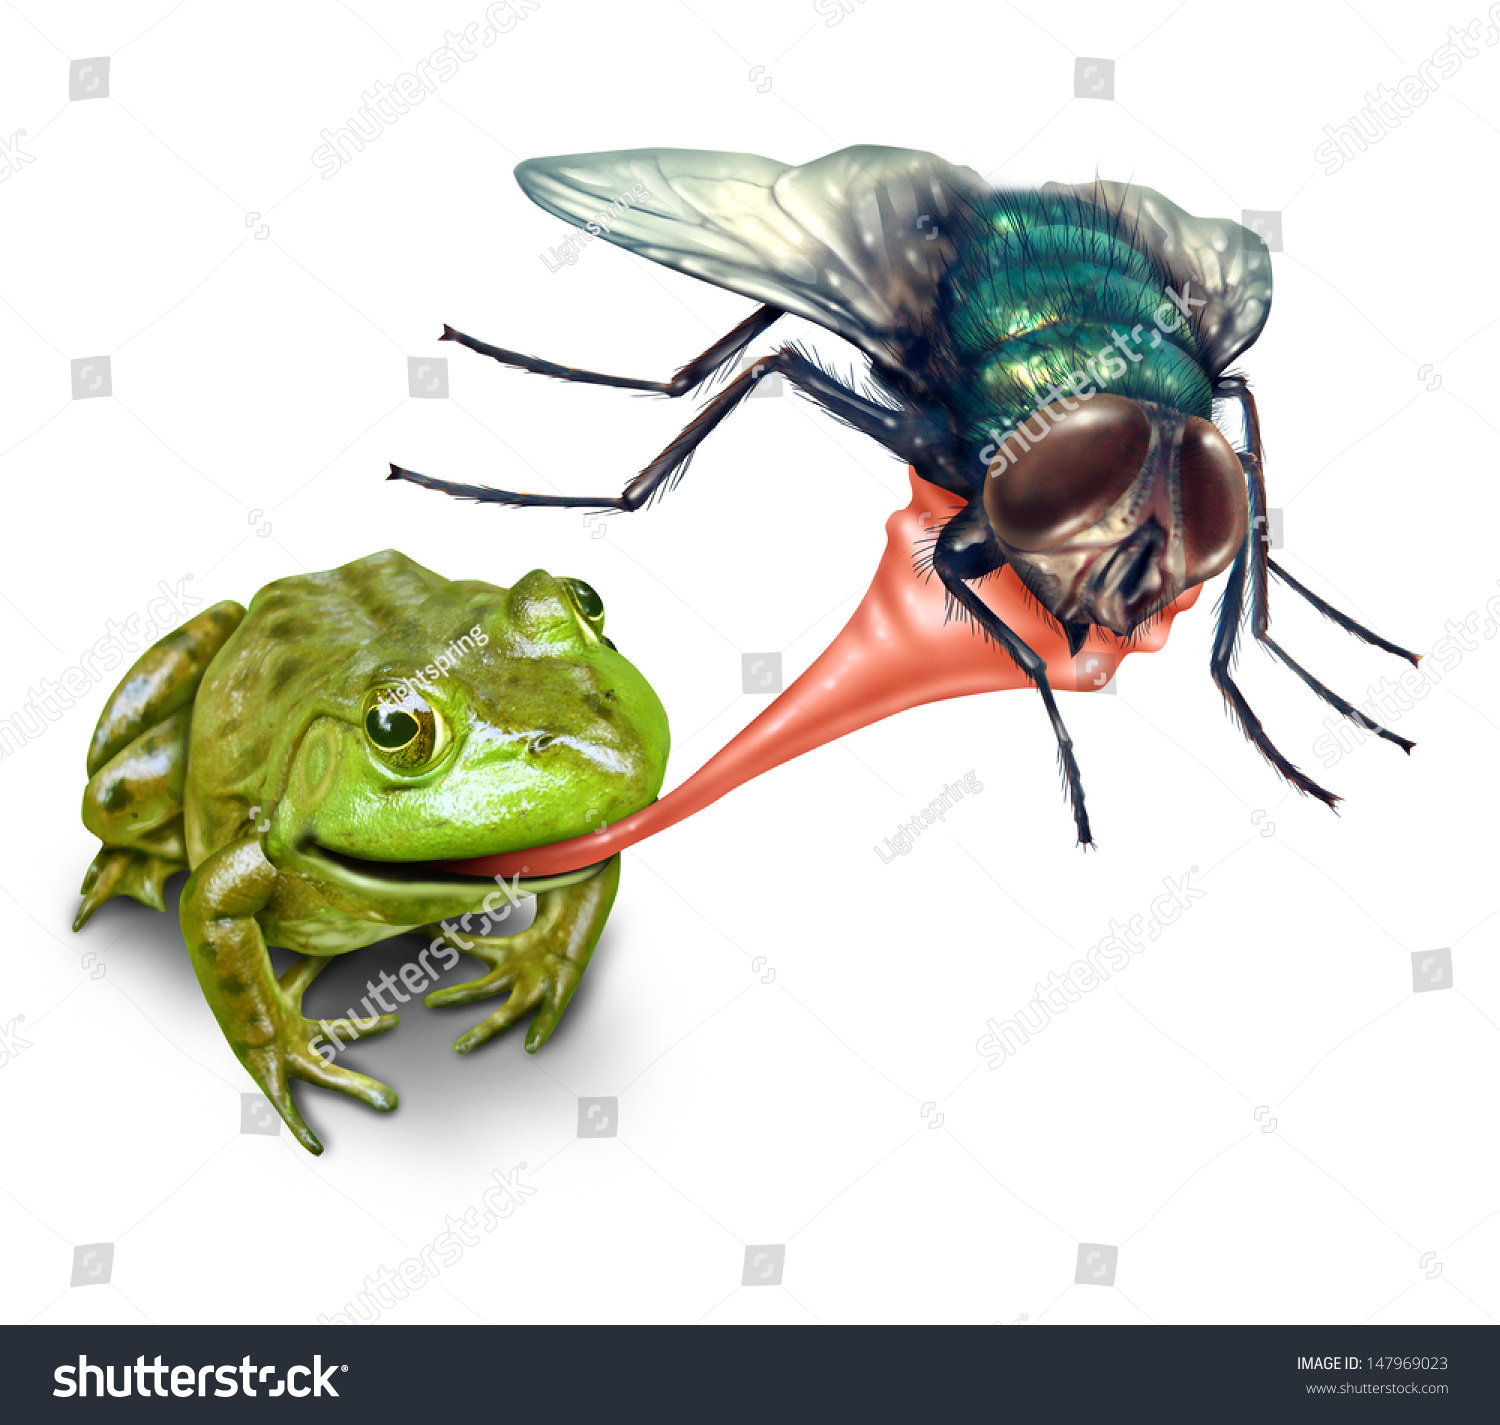 Image result for toad eating a fly